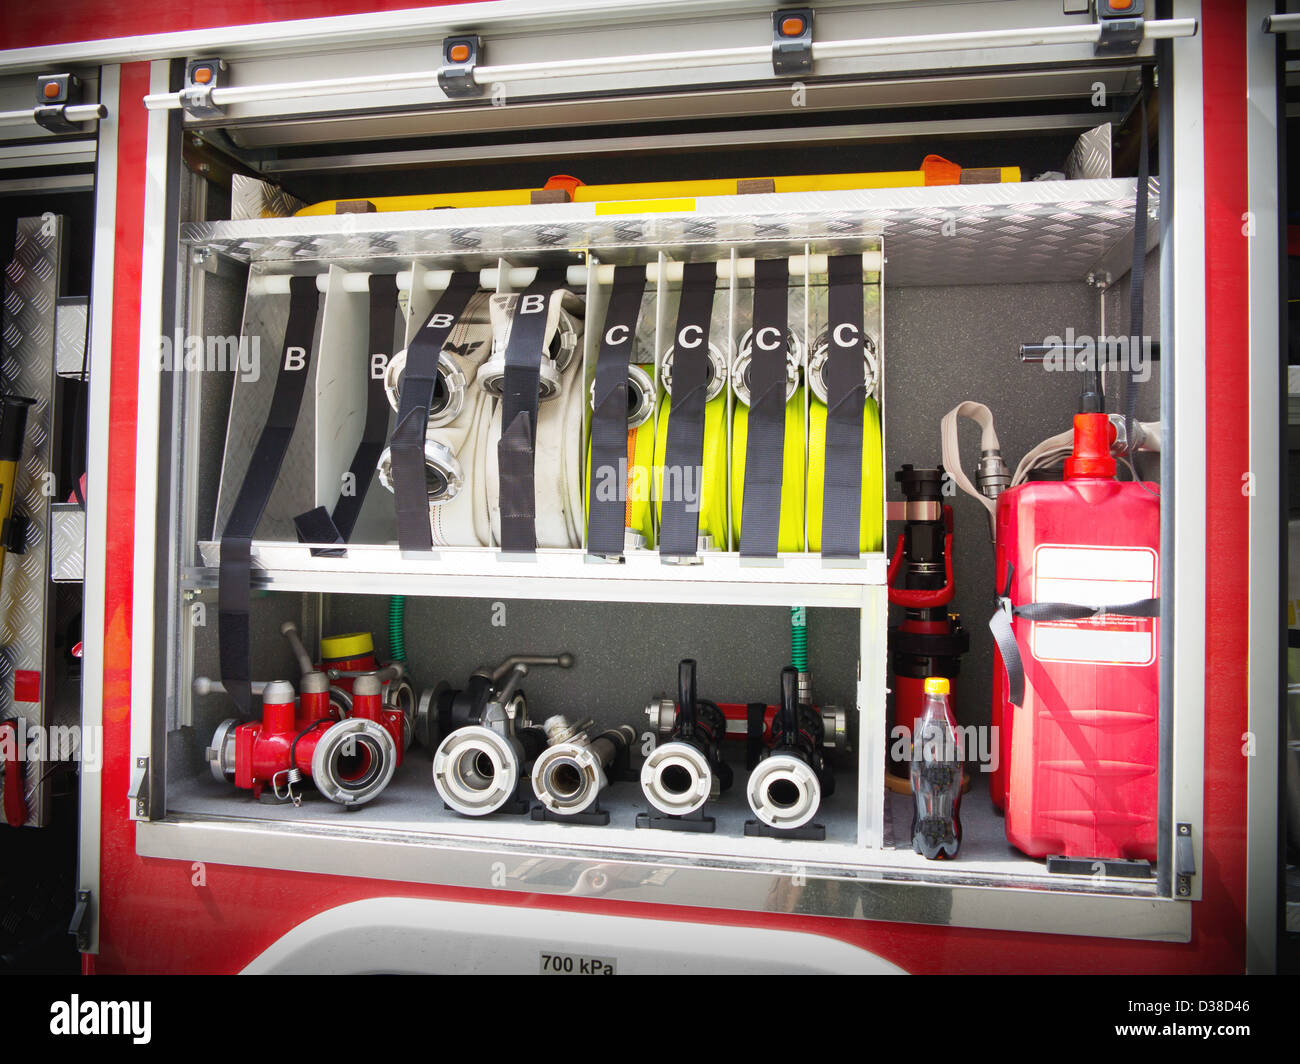 Fire valves and hoses on the side of a fire engine Stock Photo